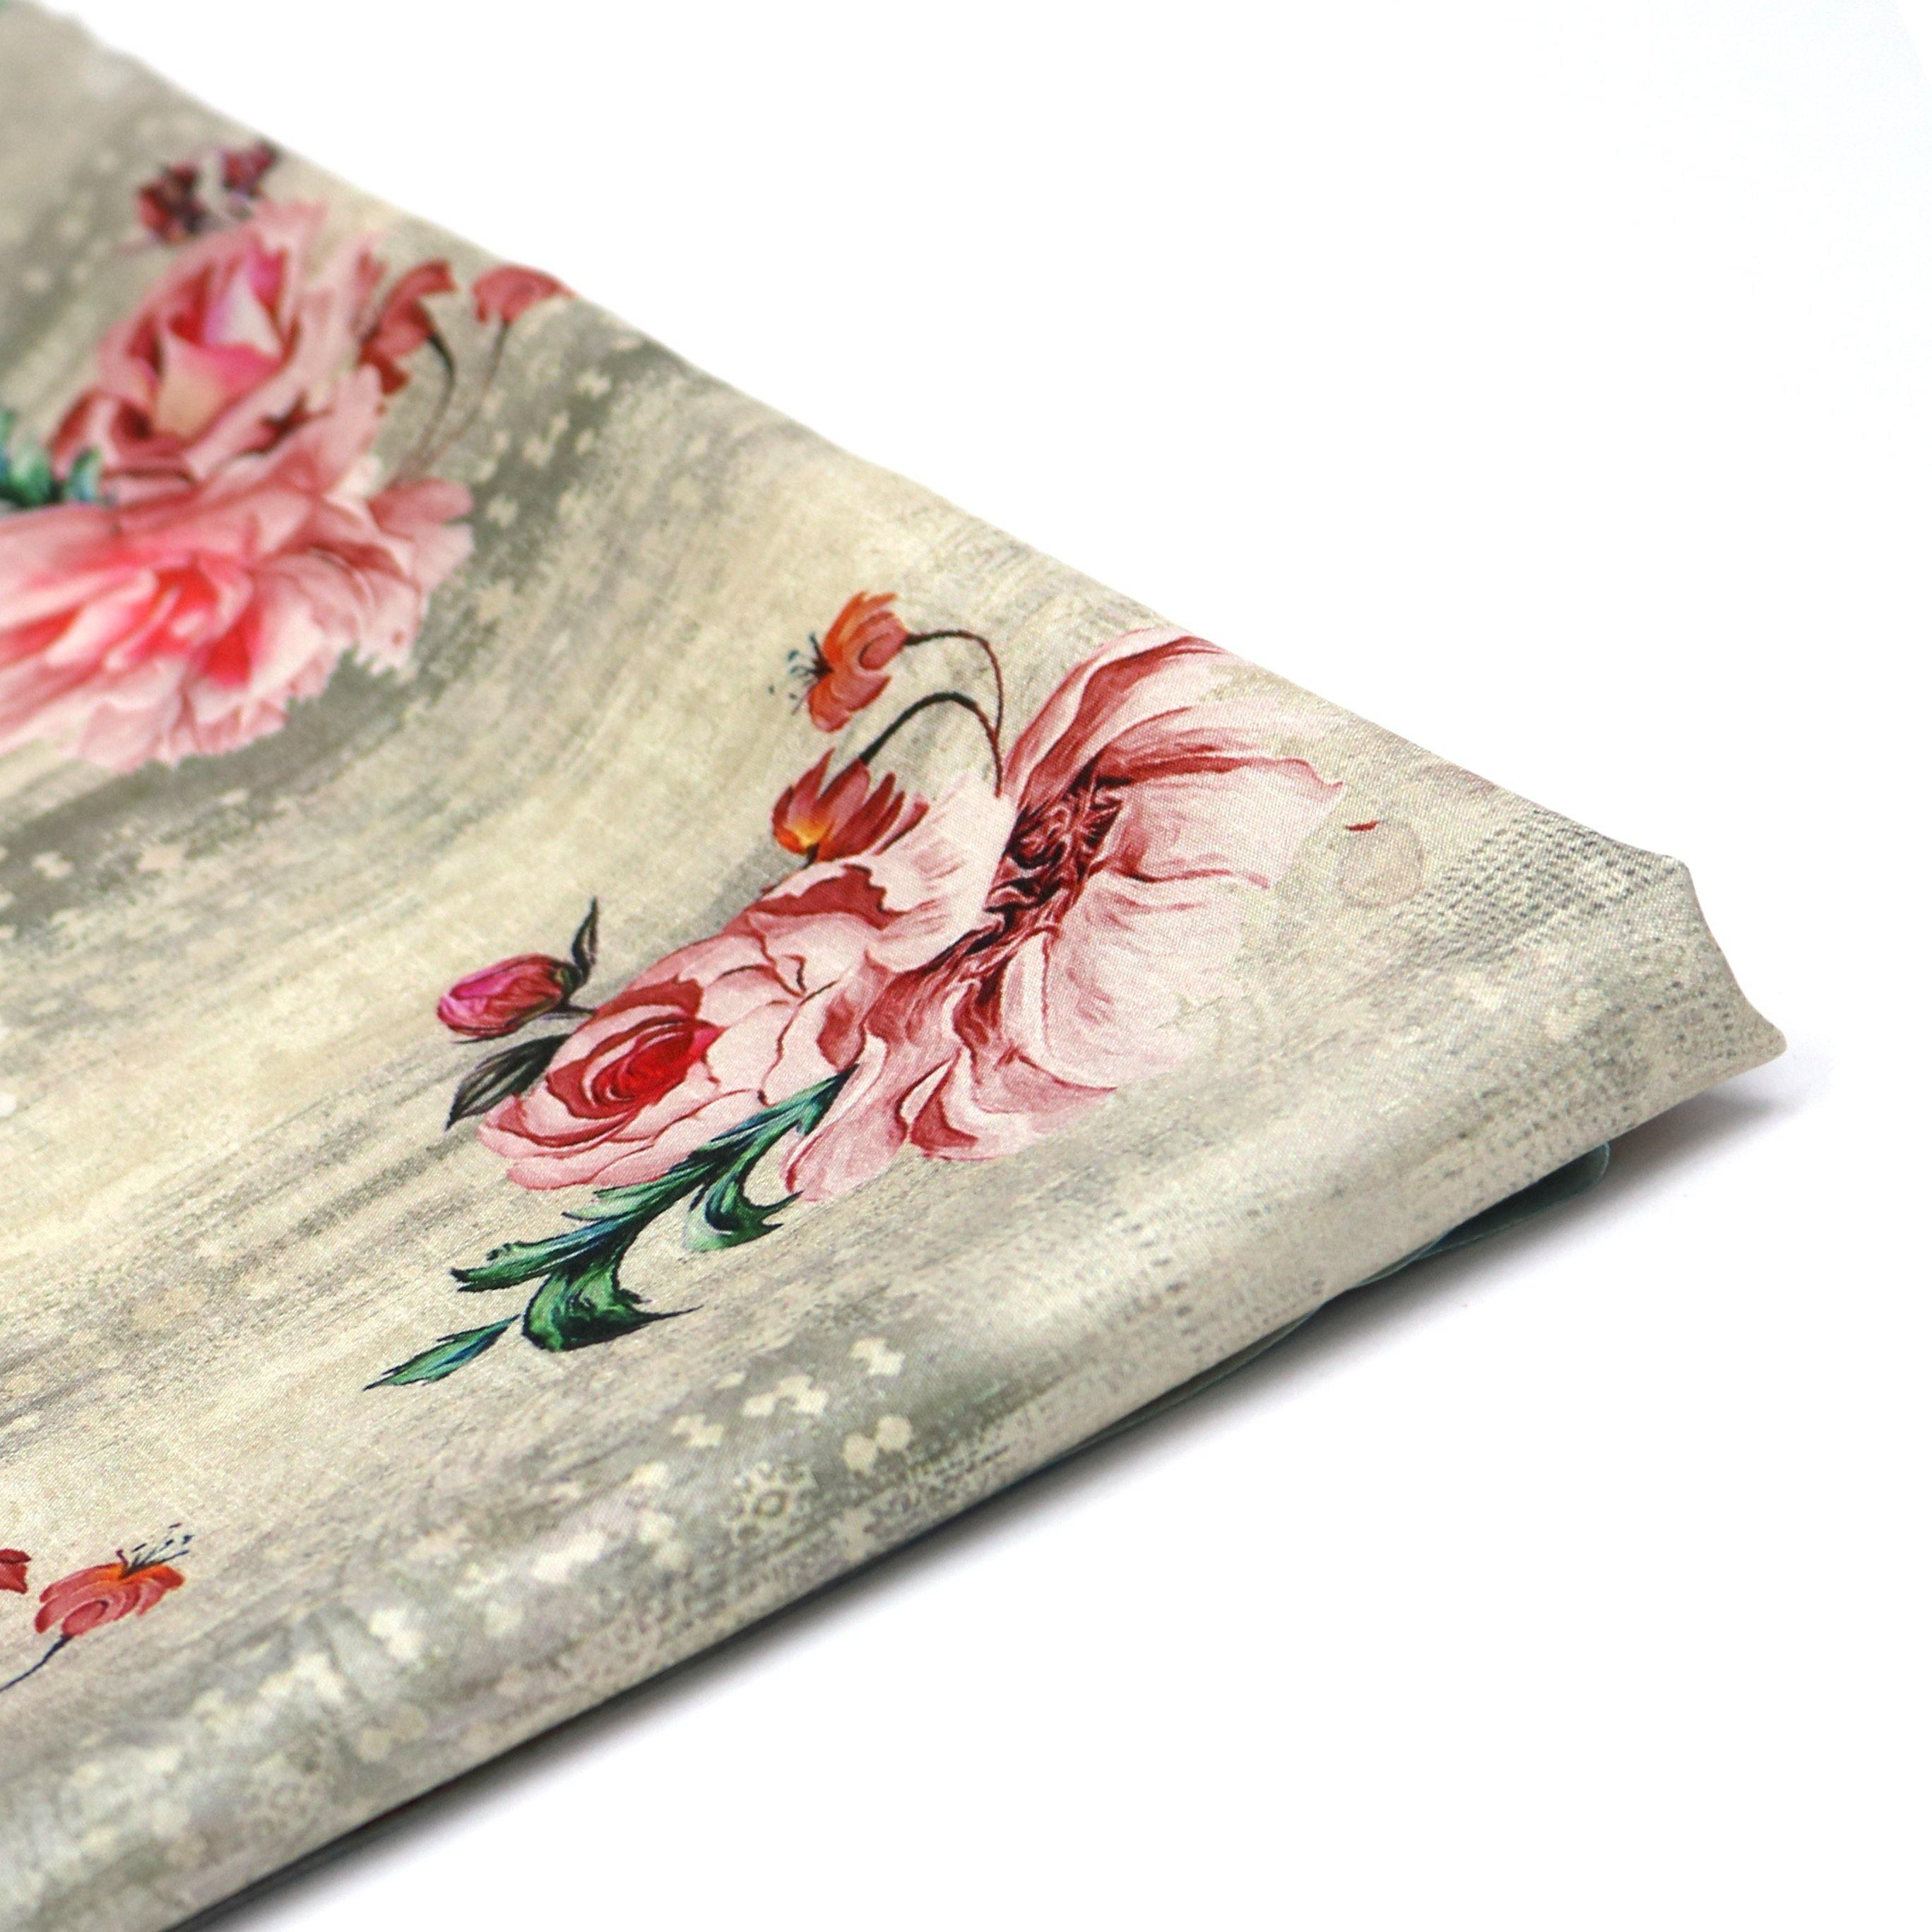 Red Flower Digital Printed Kora Silk Fabric - FAB VOGUE Studio